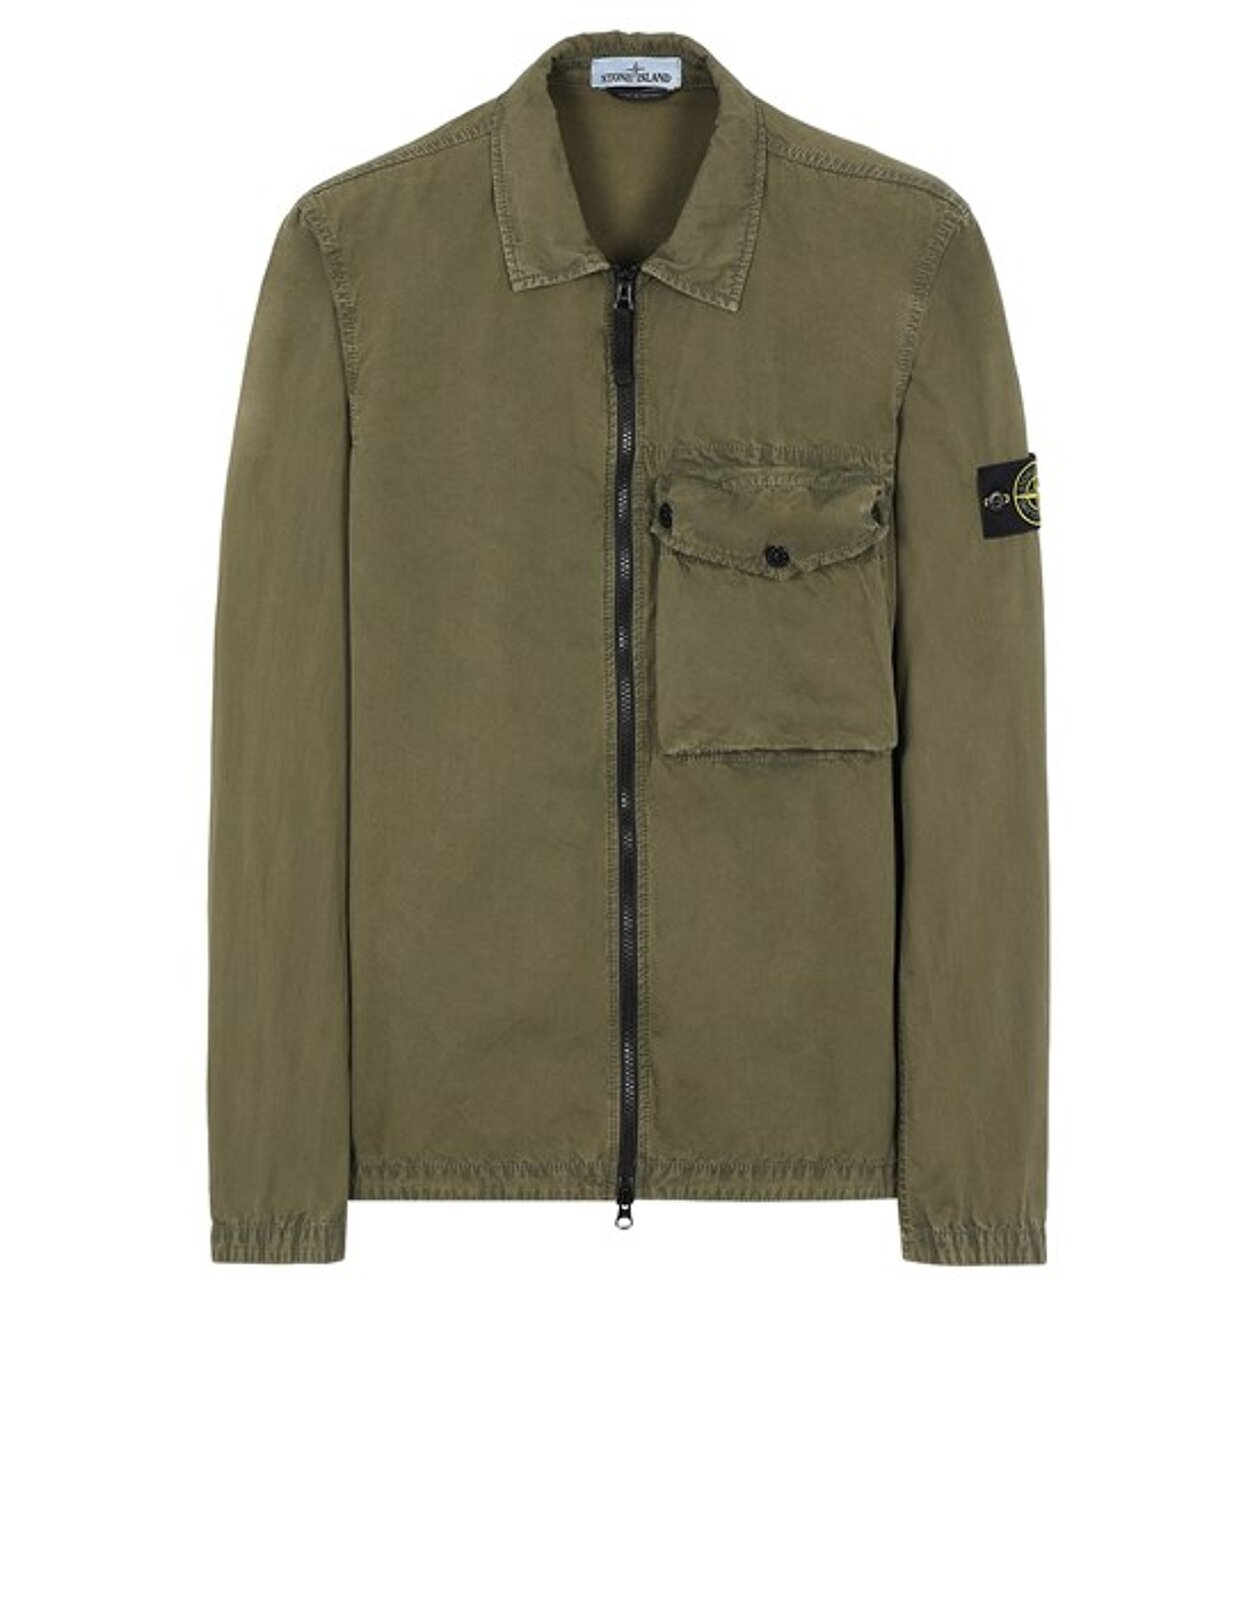 117Wn T.Co Old - Stone Island